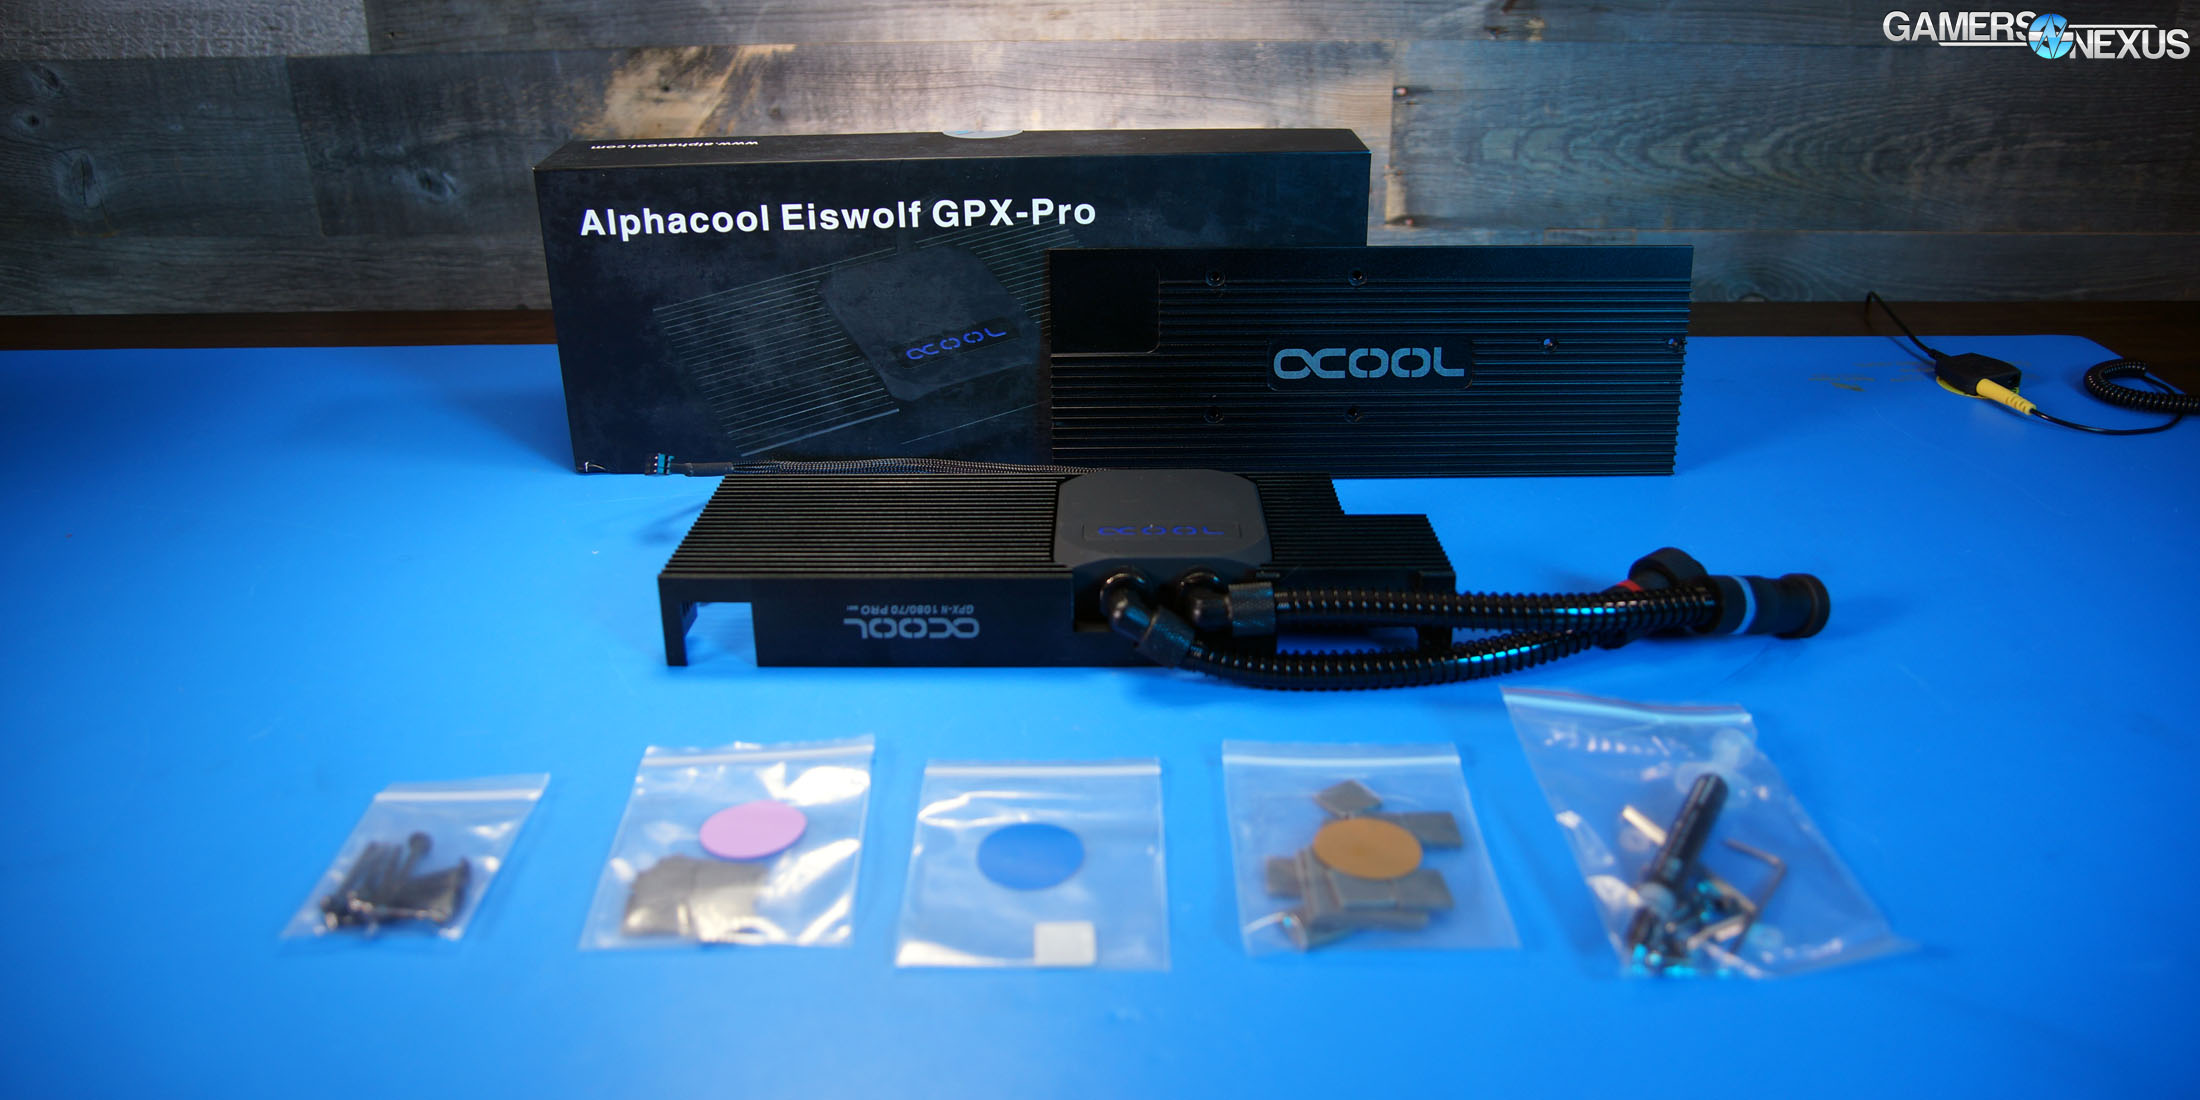 alphacool-gpx-pro-pack